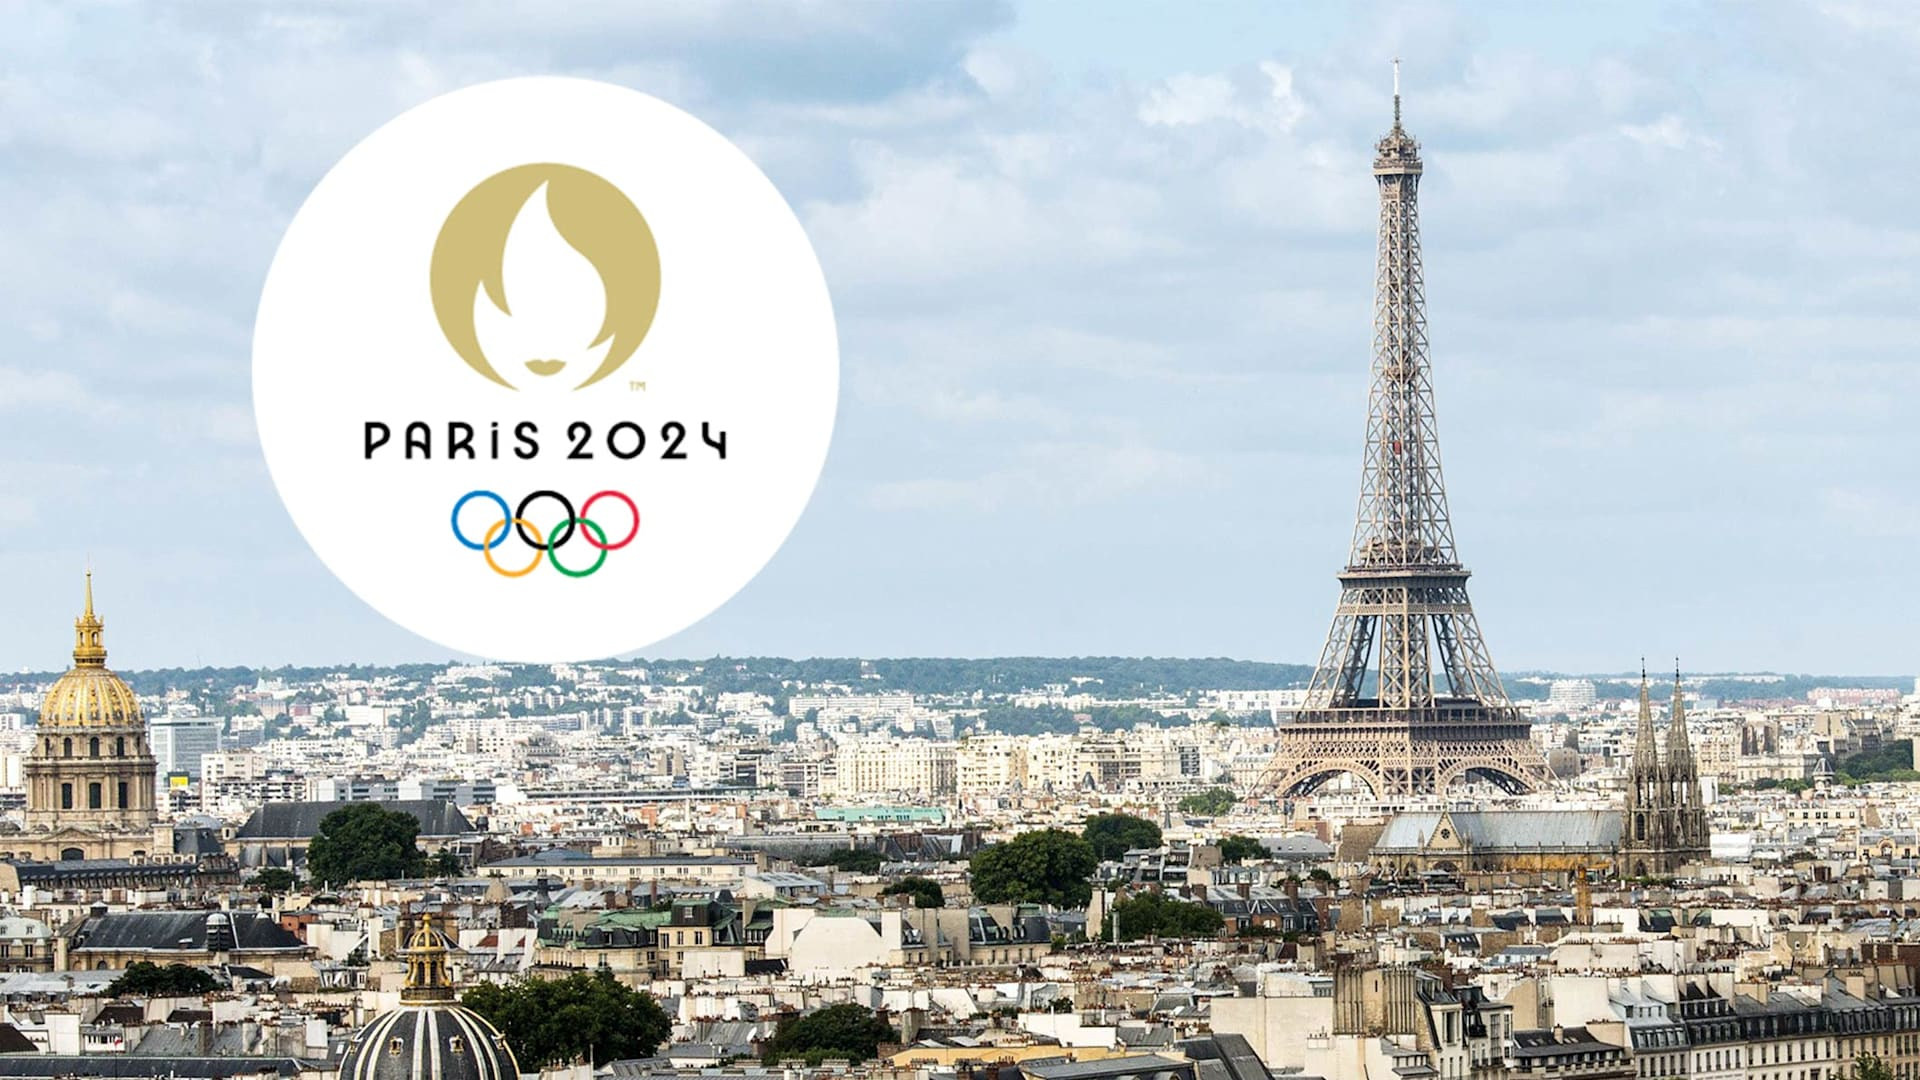 Paris 20 unveils new Olympic and Paralympic Games emblem ...